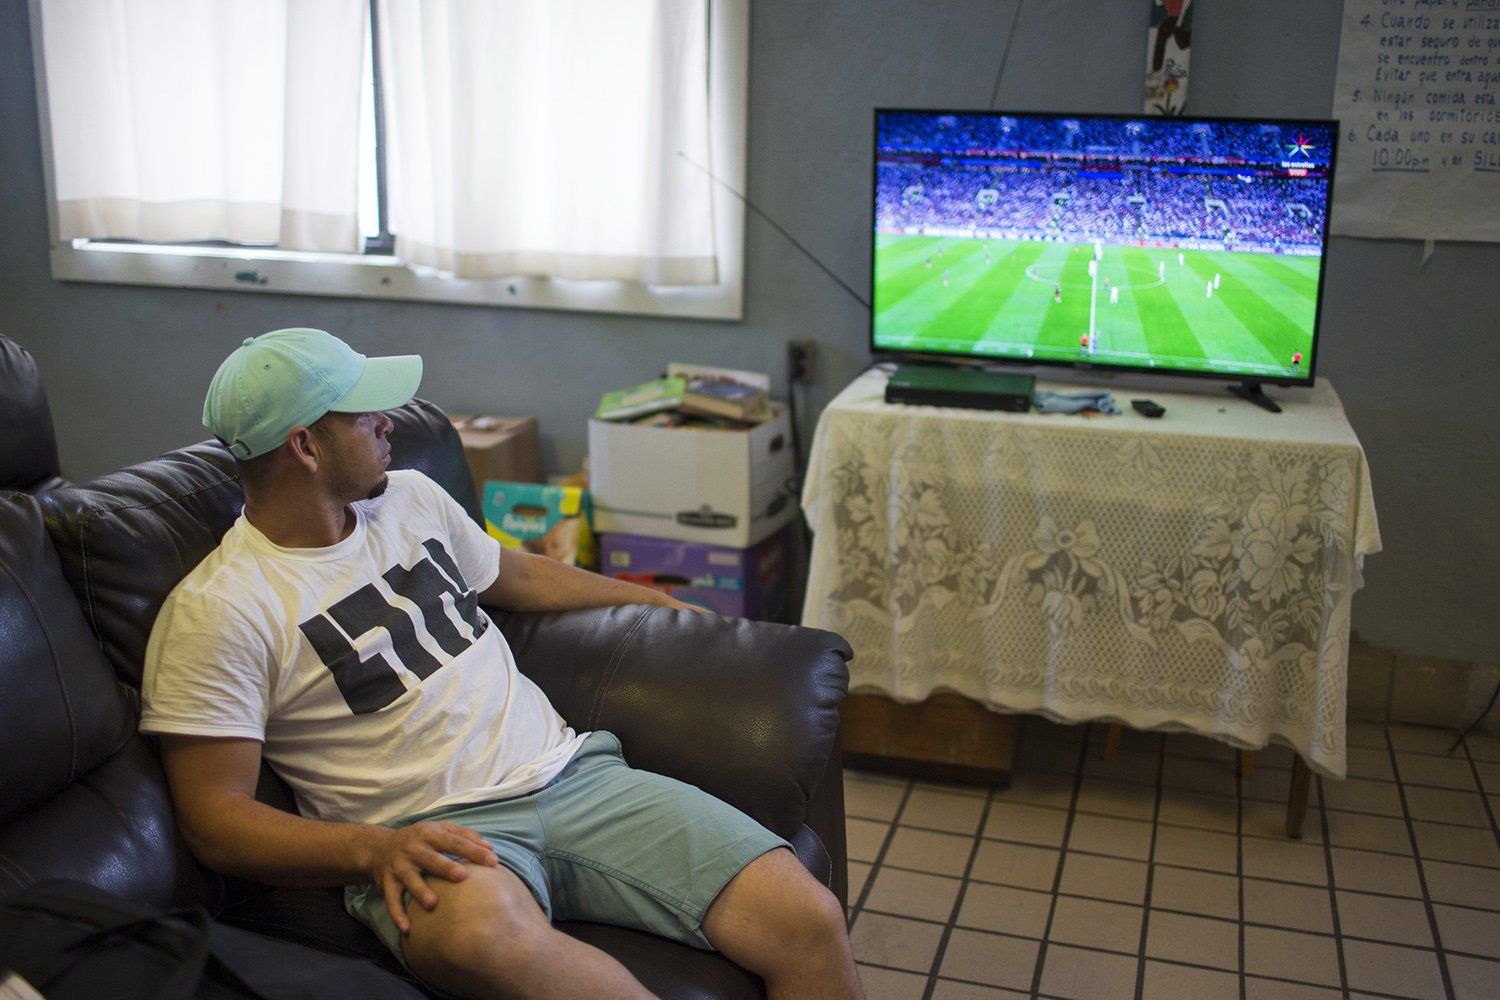 Mario (first name only given) watches the World Cup semi-final at the Casa Vides Annunciation House in El Paso on Wednesday, July 11, 2018. Mario was reunited with his 10-year-old daughter, who had been staying at a nearby shelter, less than a week later.